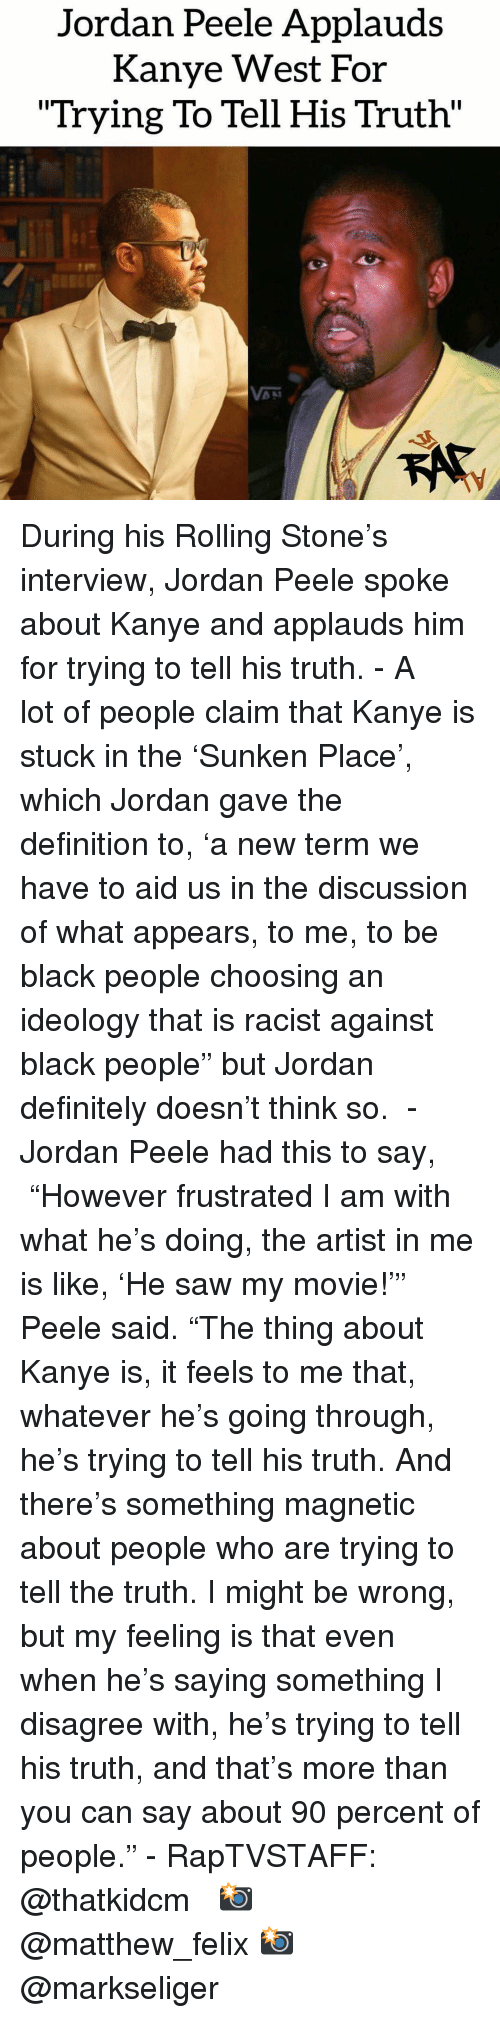 """Definitely, Jordan Peele, and Kanye: Jordan Peele Applauds  Kanye West For  """"Trying To Tell His Truth"""" During his Rolling Stone's interview, Jordan Peele spoke about Kanye and applauds him for trying to tell his truth. - A lot of people claim that Kanye is stuck in the 'Sunken Place', which Jordan gave the definition to, 'a new term we have to aid us in the discussion of what appears, to me, to be black people choosing an ideology that is racist against black people"""" but Jordan definitely doesn't think so.  - Jordan Peele had this to say,  """"However frustrated I am with what he's doing, the artist in me is like, 'He saw my movie!'"""" Peele said. """"The thing about Kanye is, it feels to me that, whatever he's going through, he's trying to tell his truth. And there's something magnetic about people who are trying to tell the truth. I might be wrong, but my feeling is that even when he's saying something I disagree with, he's trying to tell his truth, and that's more than you can say about 90 percent of people."""" - RapTVSTAFF: @thatkidcm 📸 @matthew_felix 📸 @markseliger"""